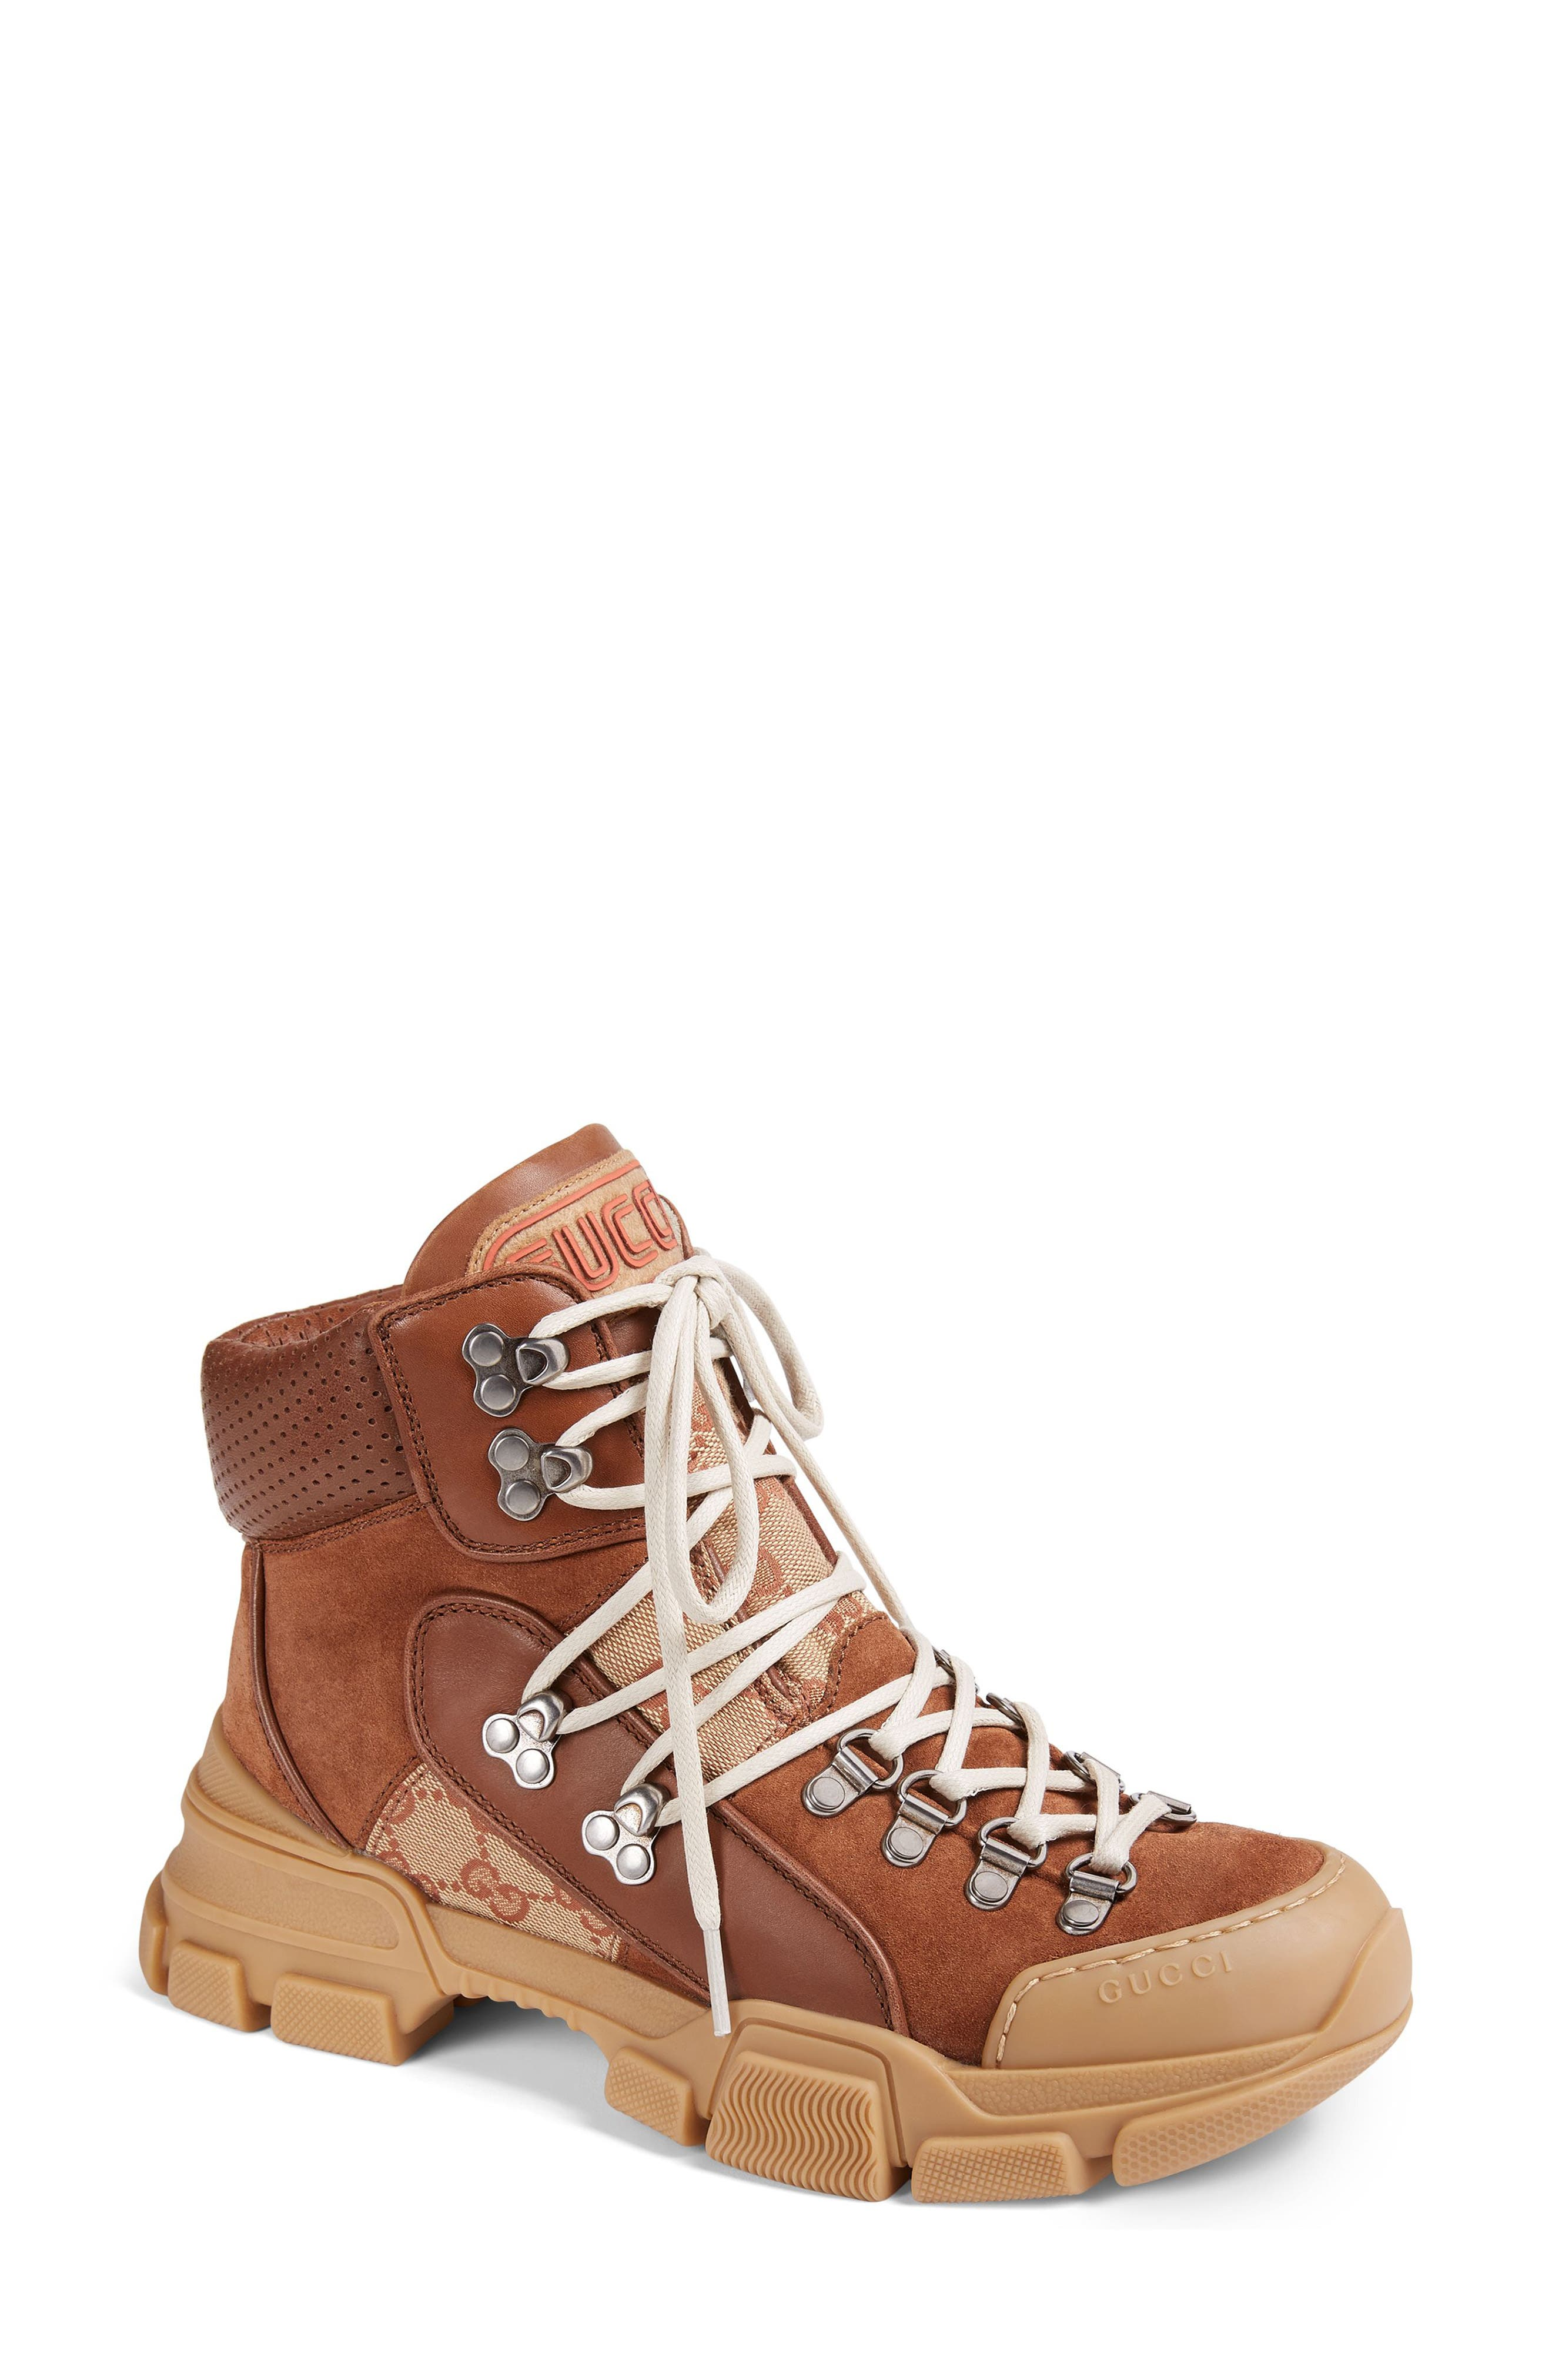 Gucci Lace-Up Boot, Brown